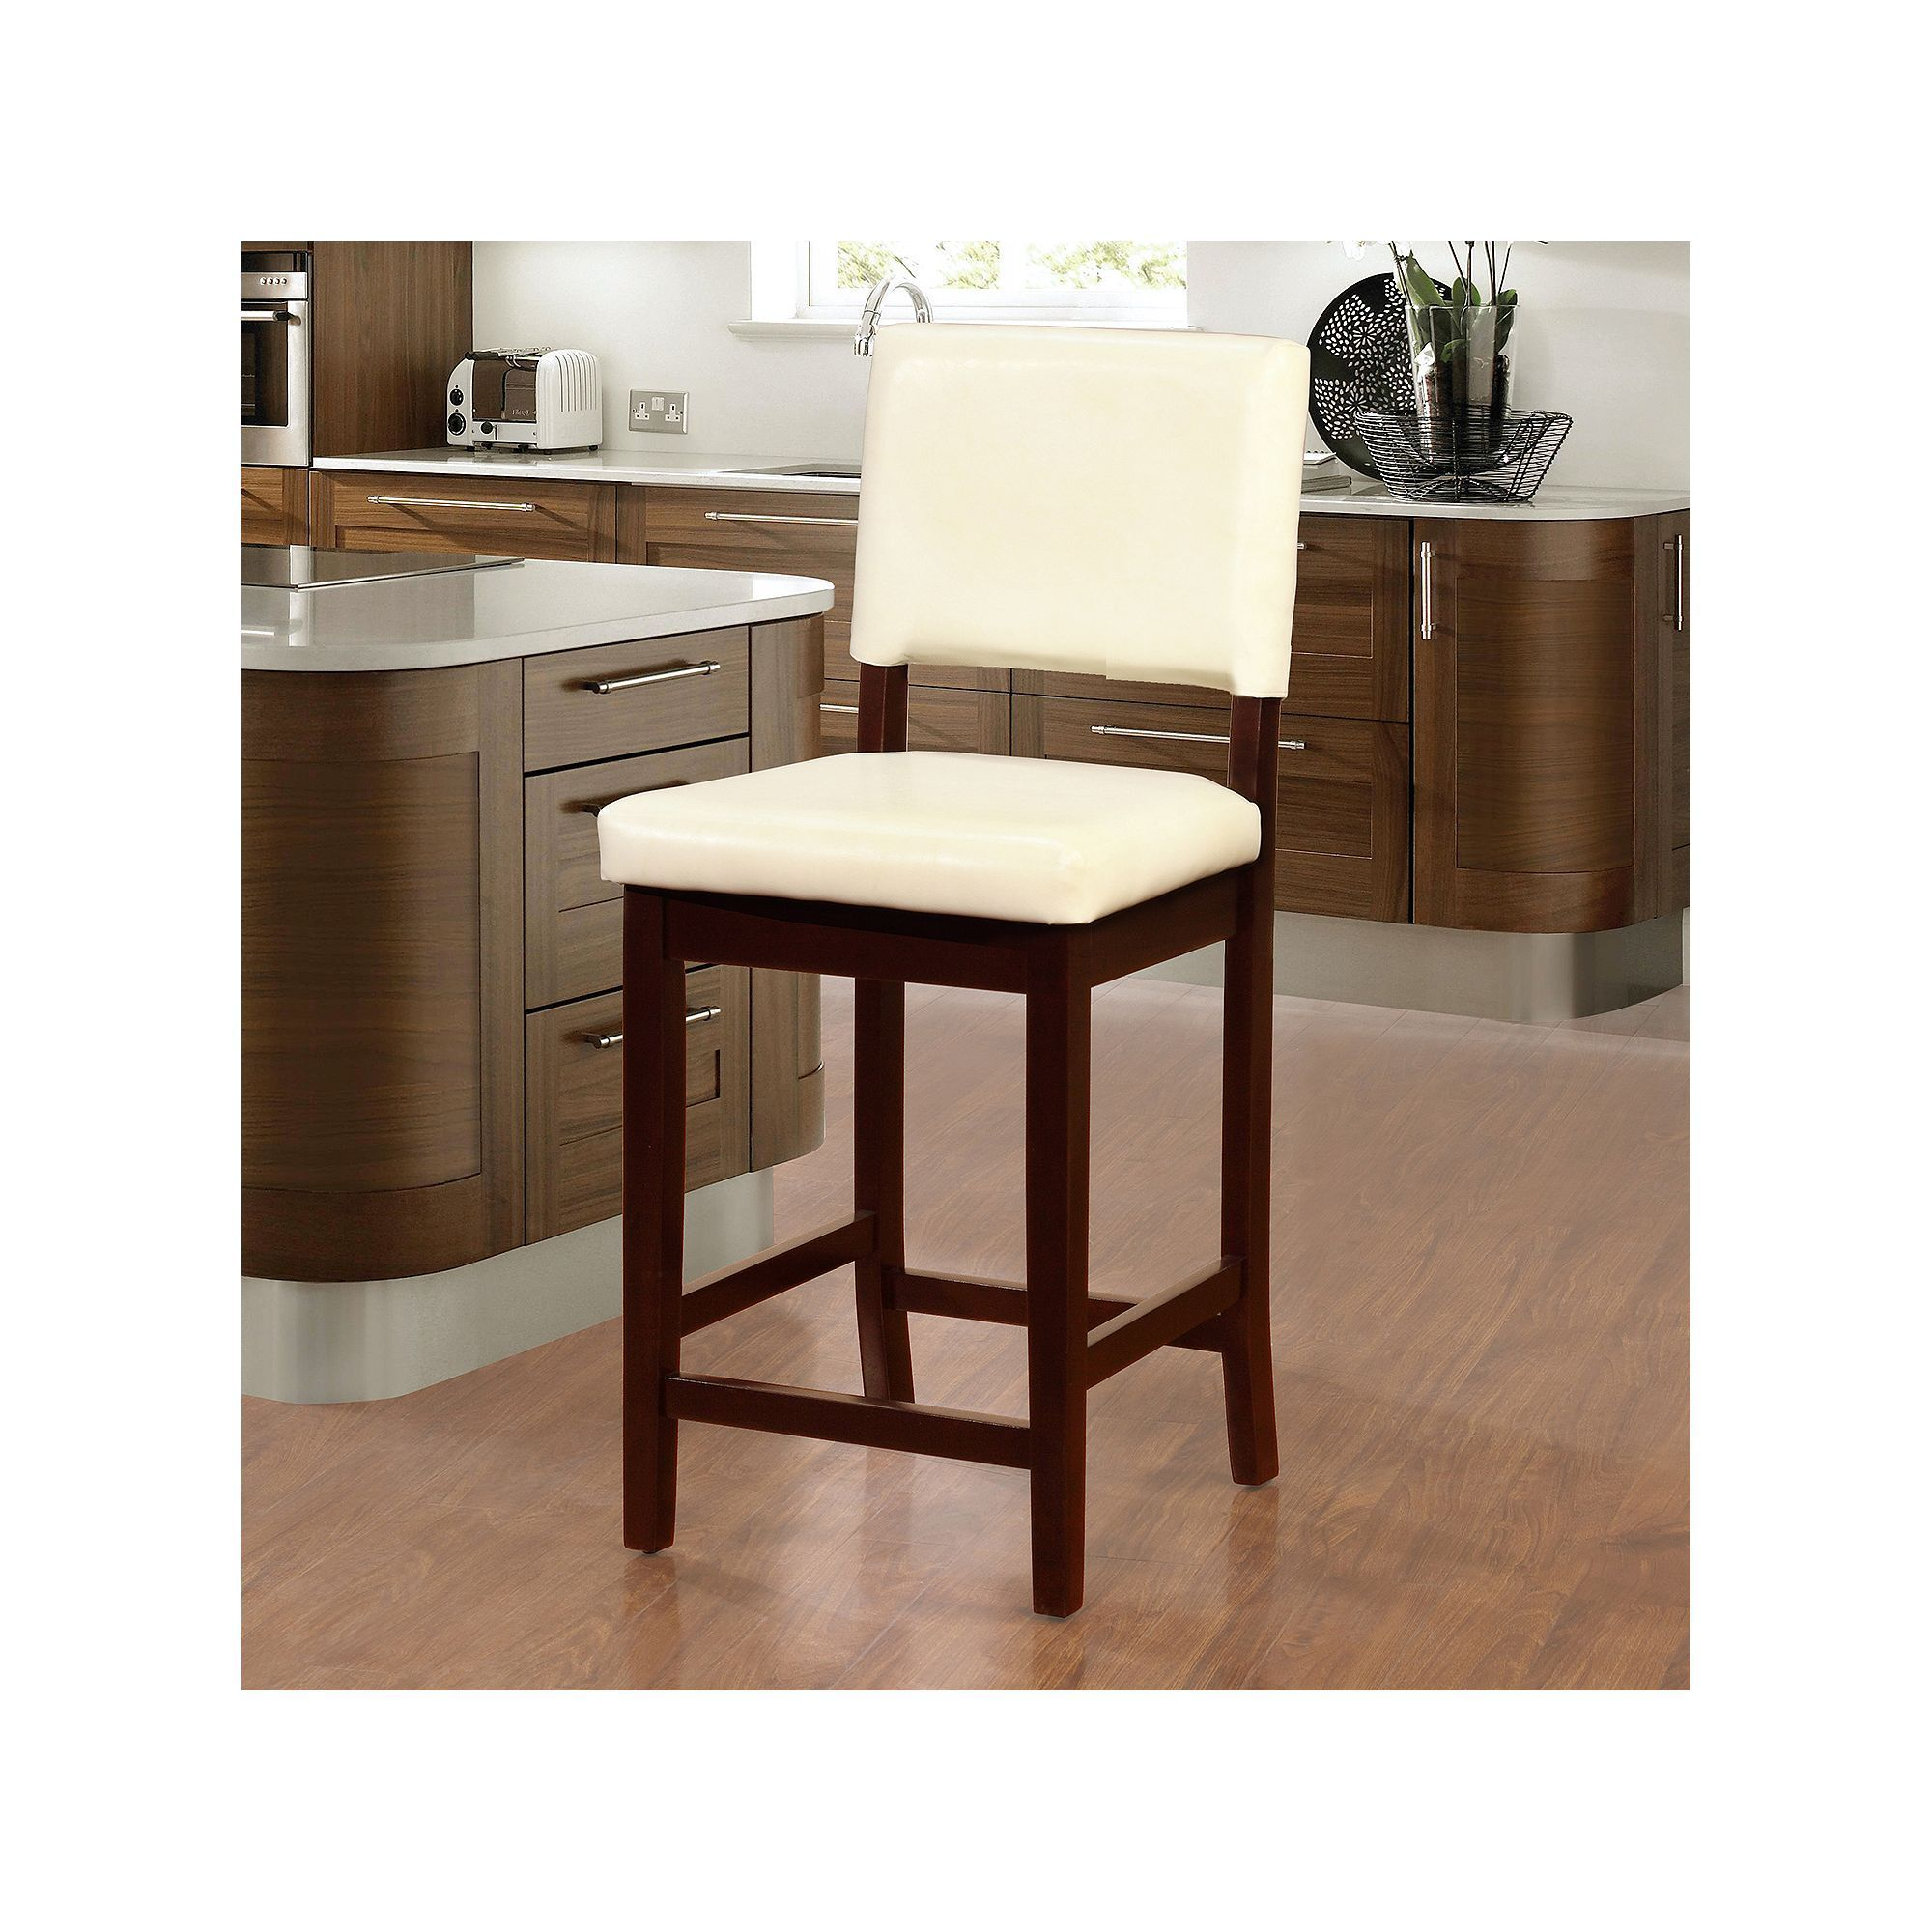 Harrison Counter Stool Counter Stools Stool Counter